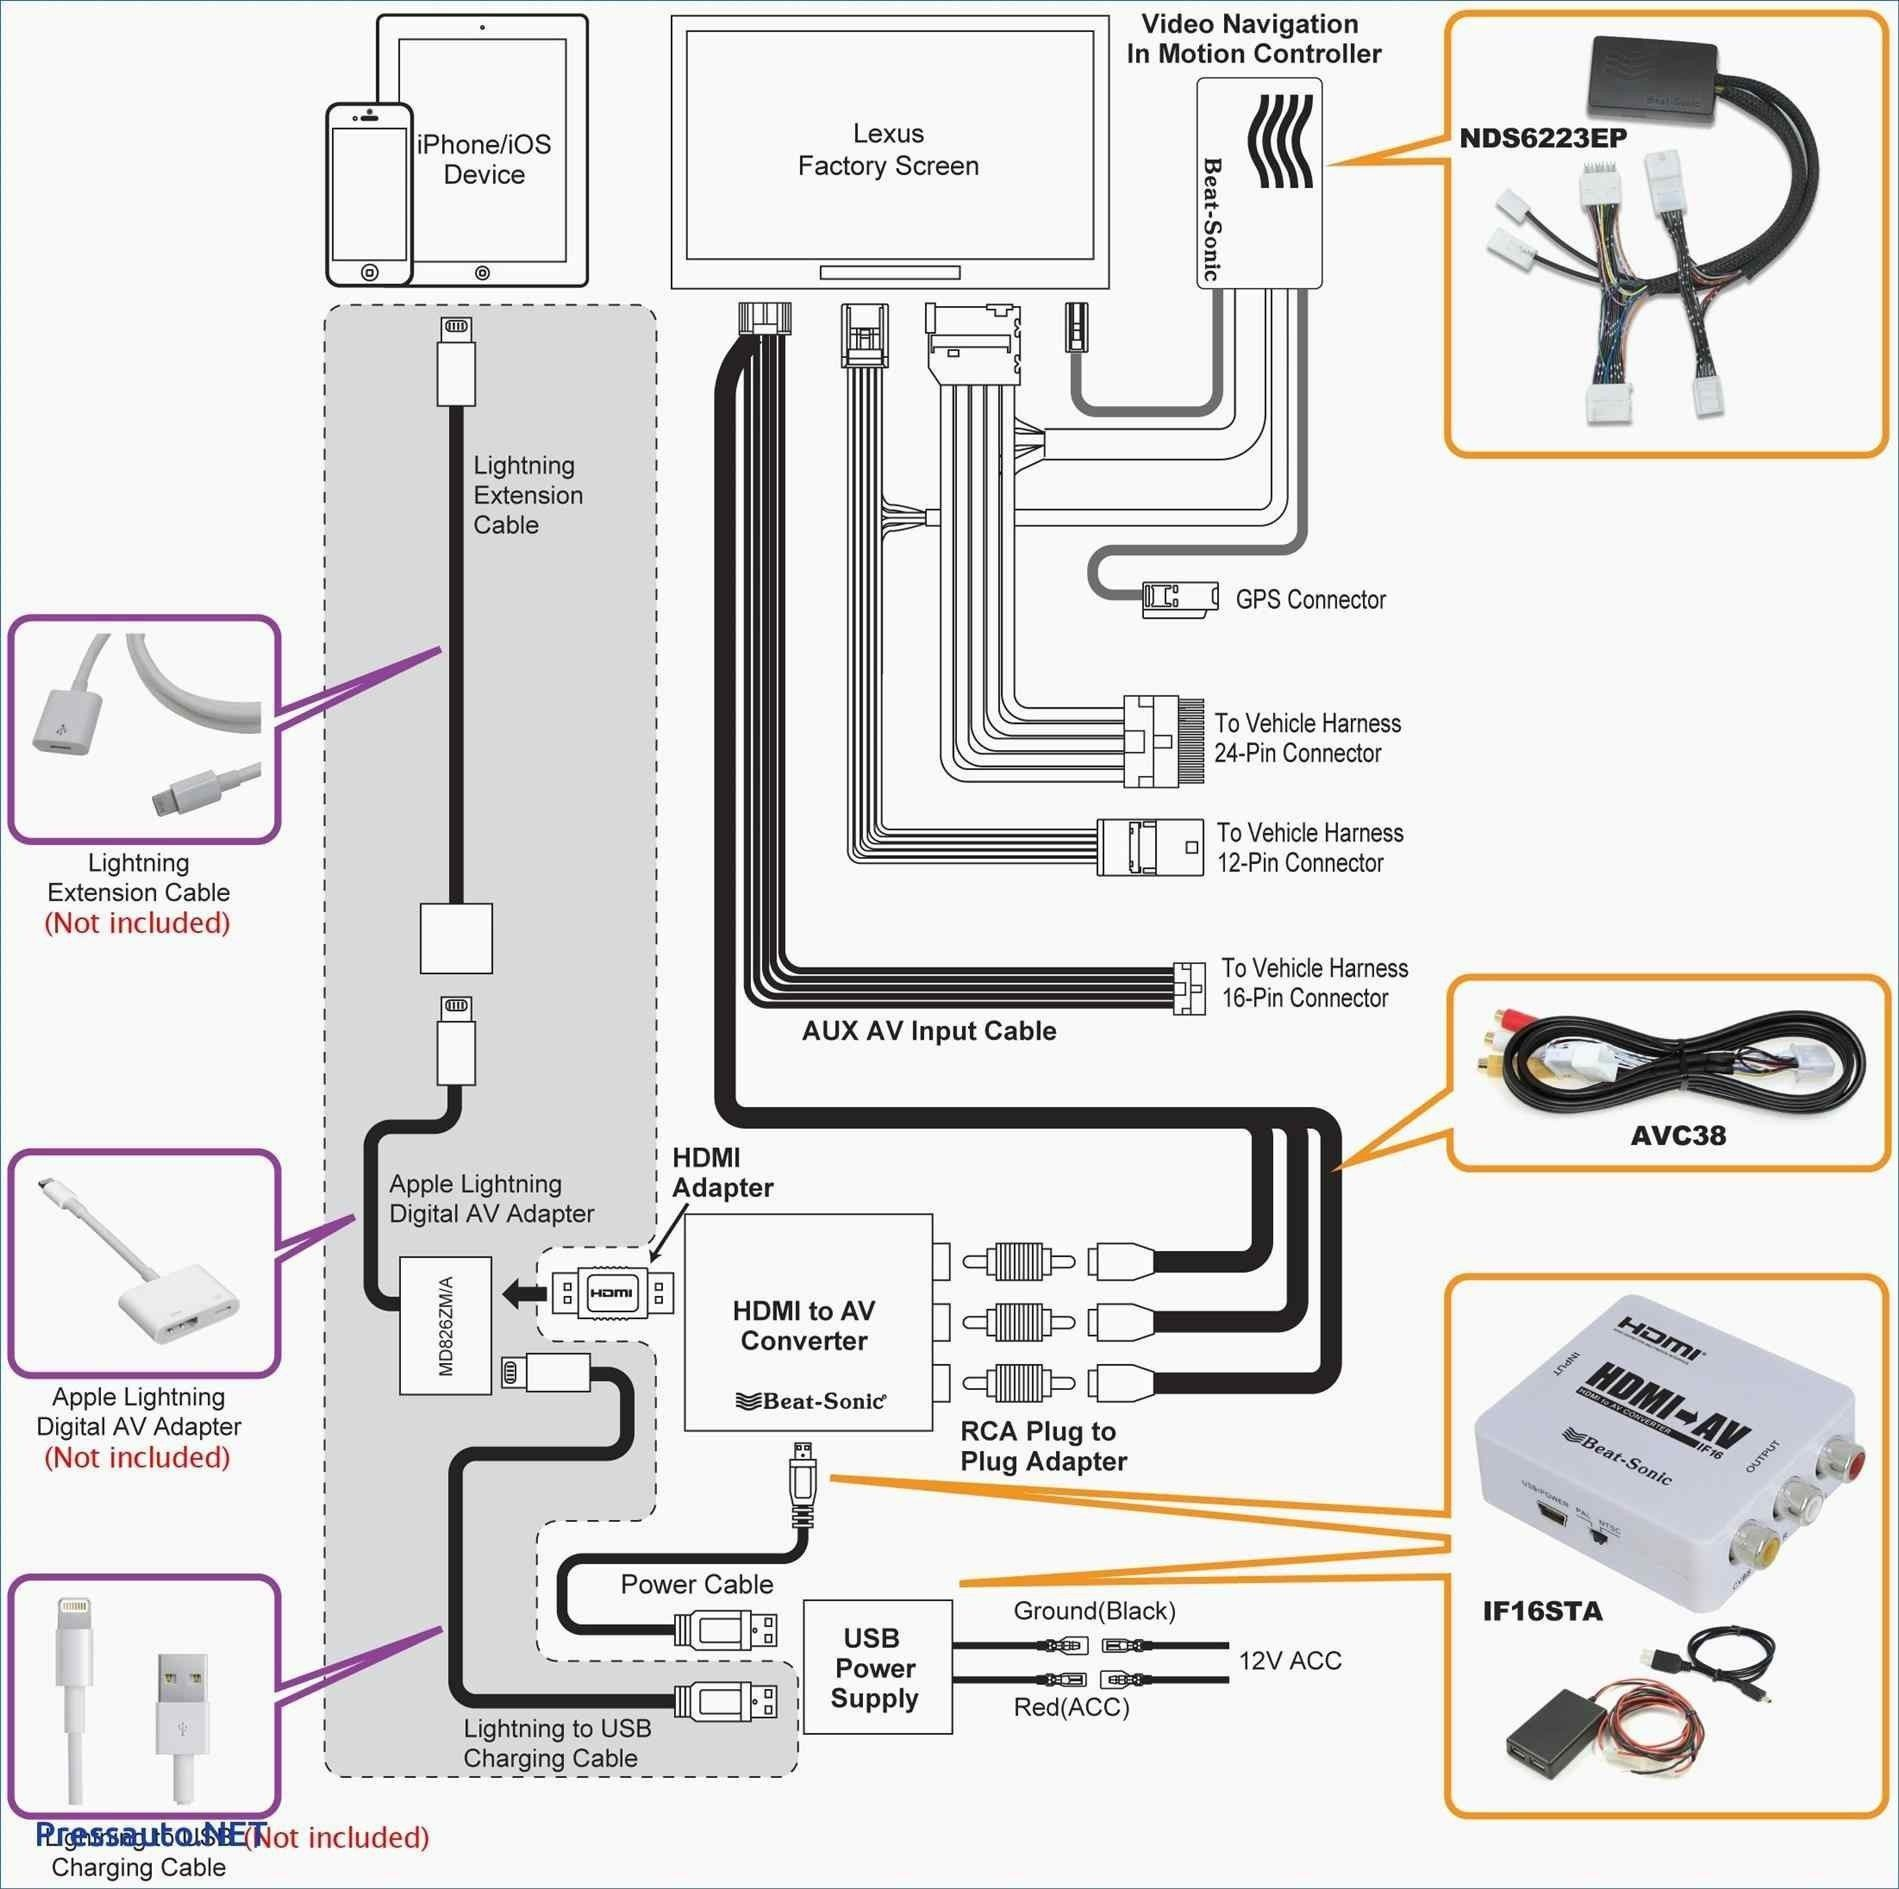 Elegant Wiring Diagram For Apple Charger Diagrams Digramssample Diagramimages Diagram Apple Charger Power Adapter